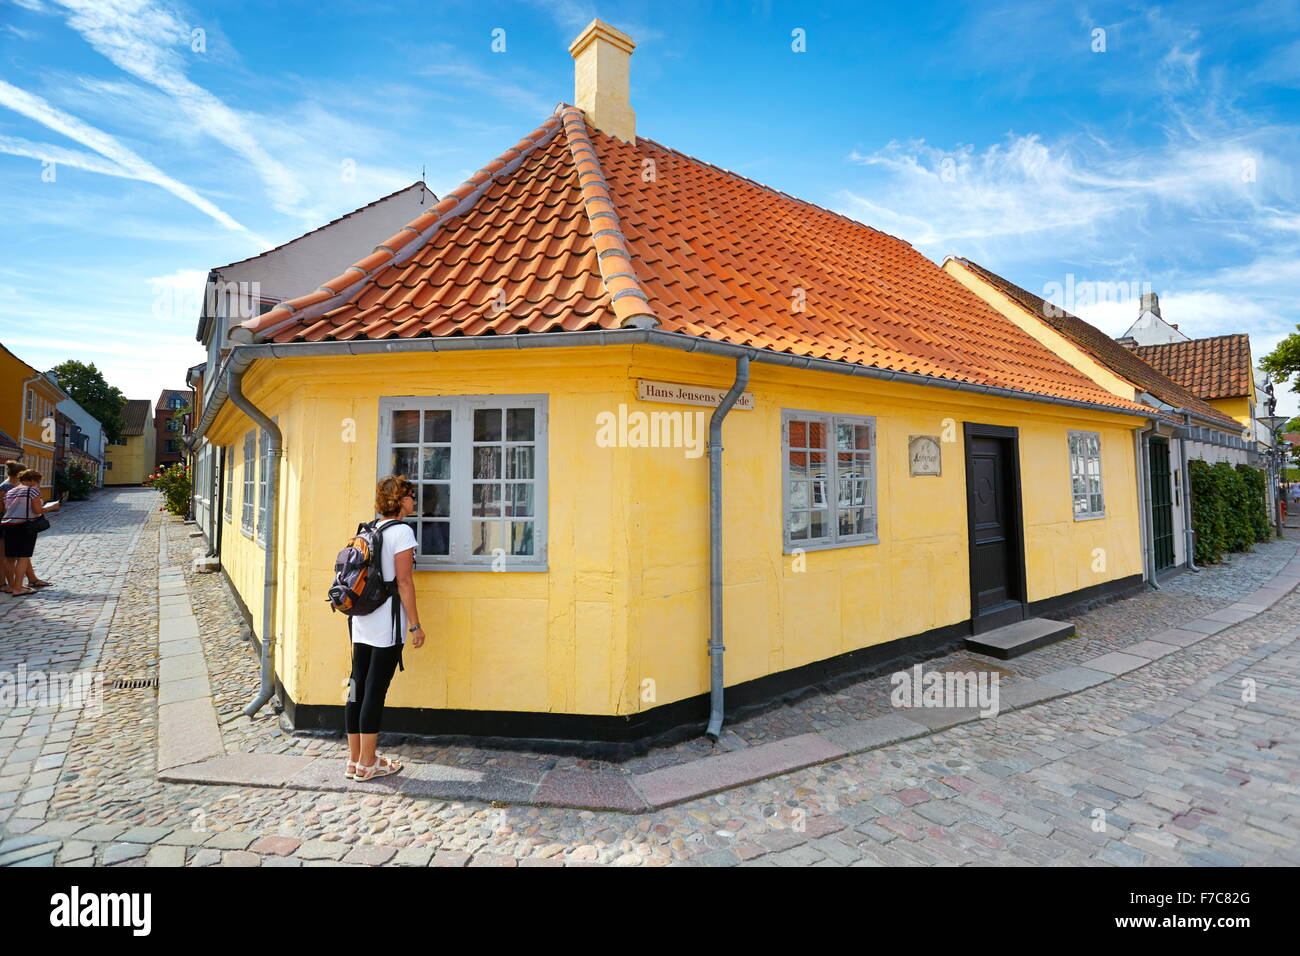 Hans Christian Andersen's home in Odense, Denmark Stock Photo